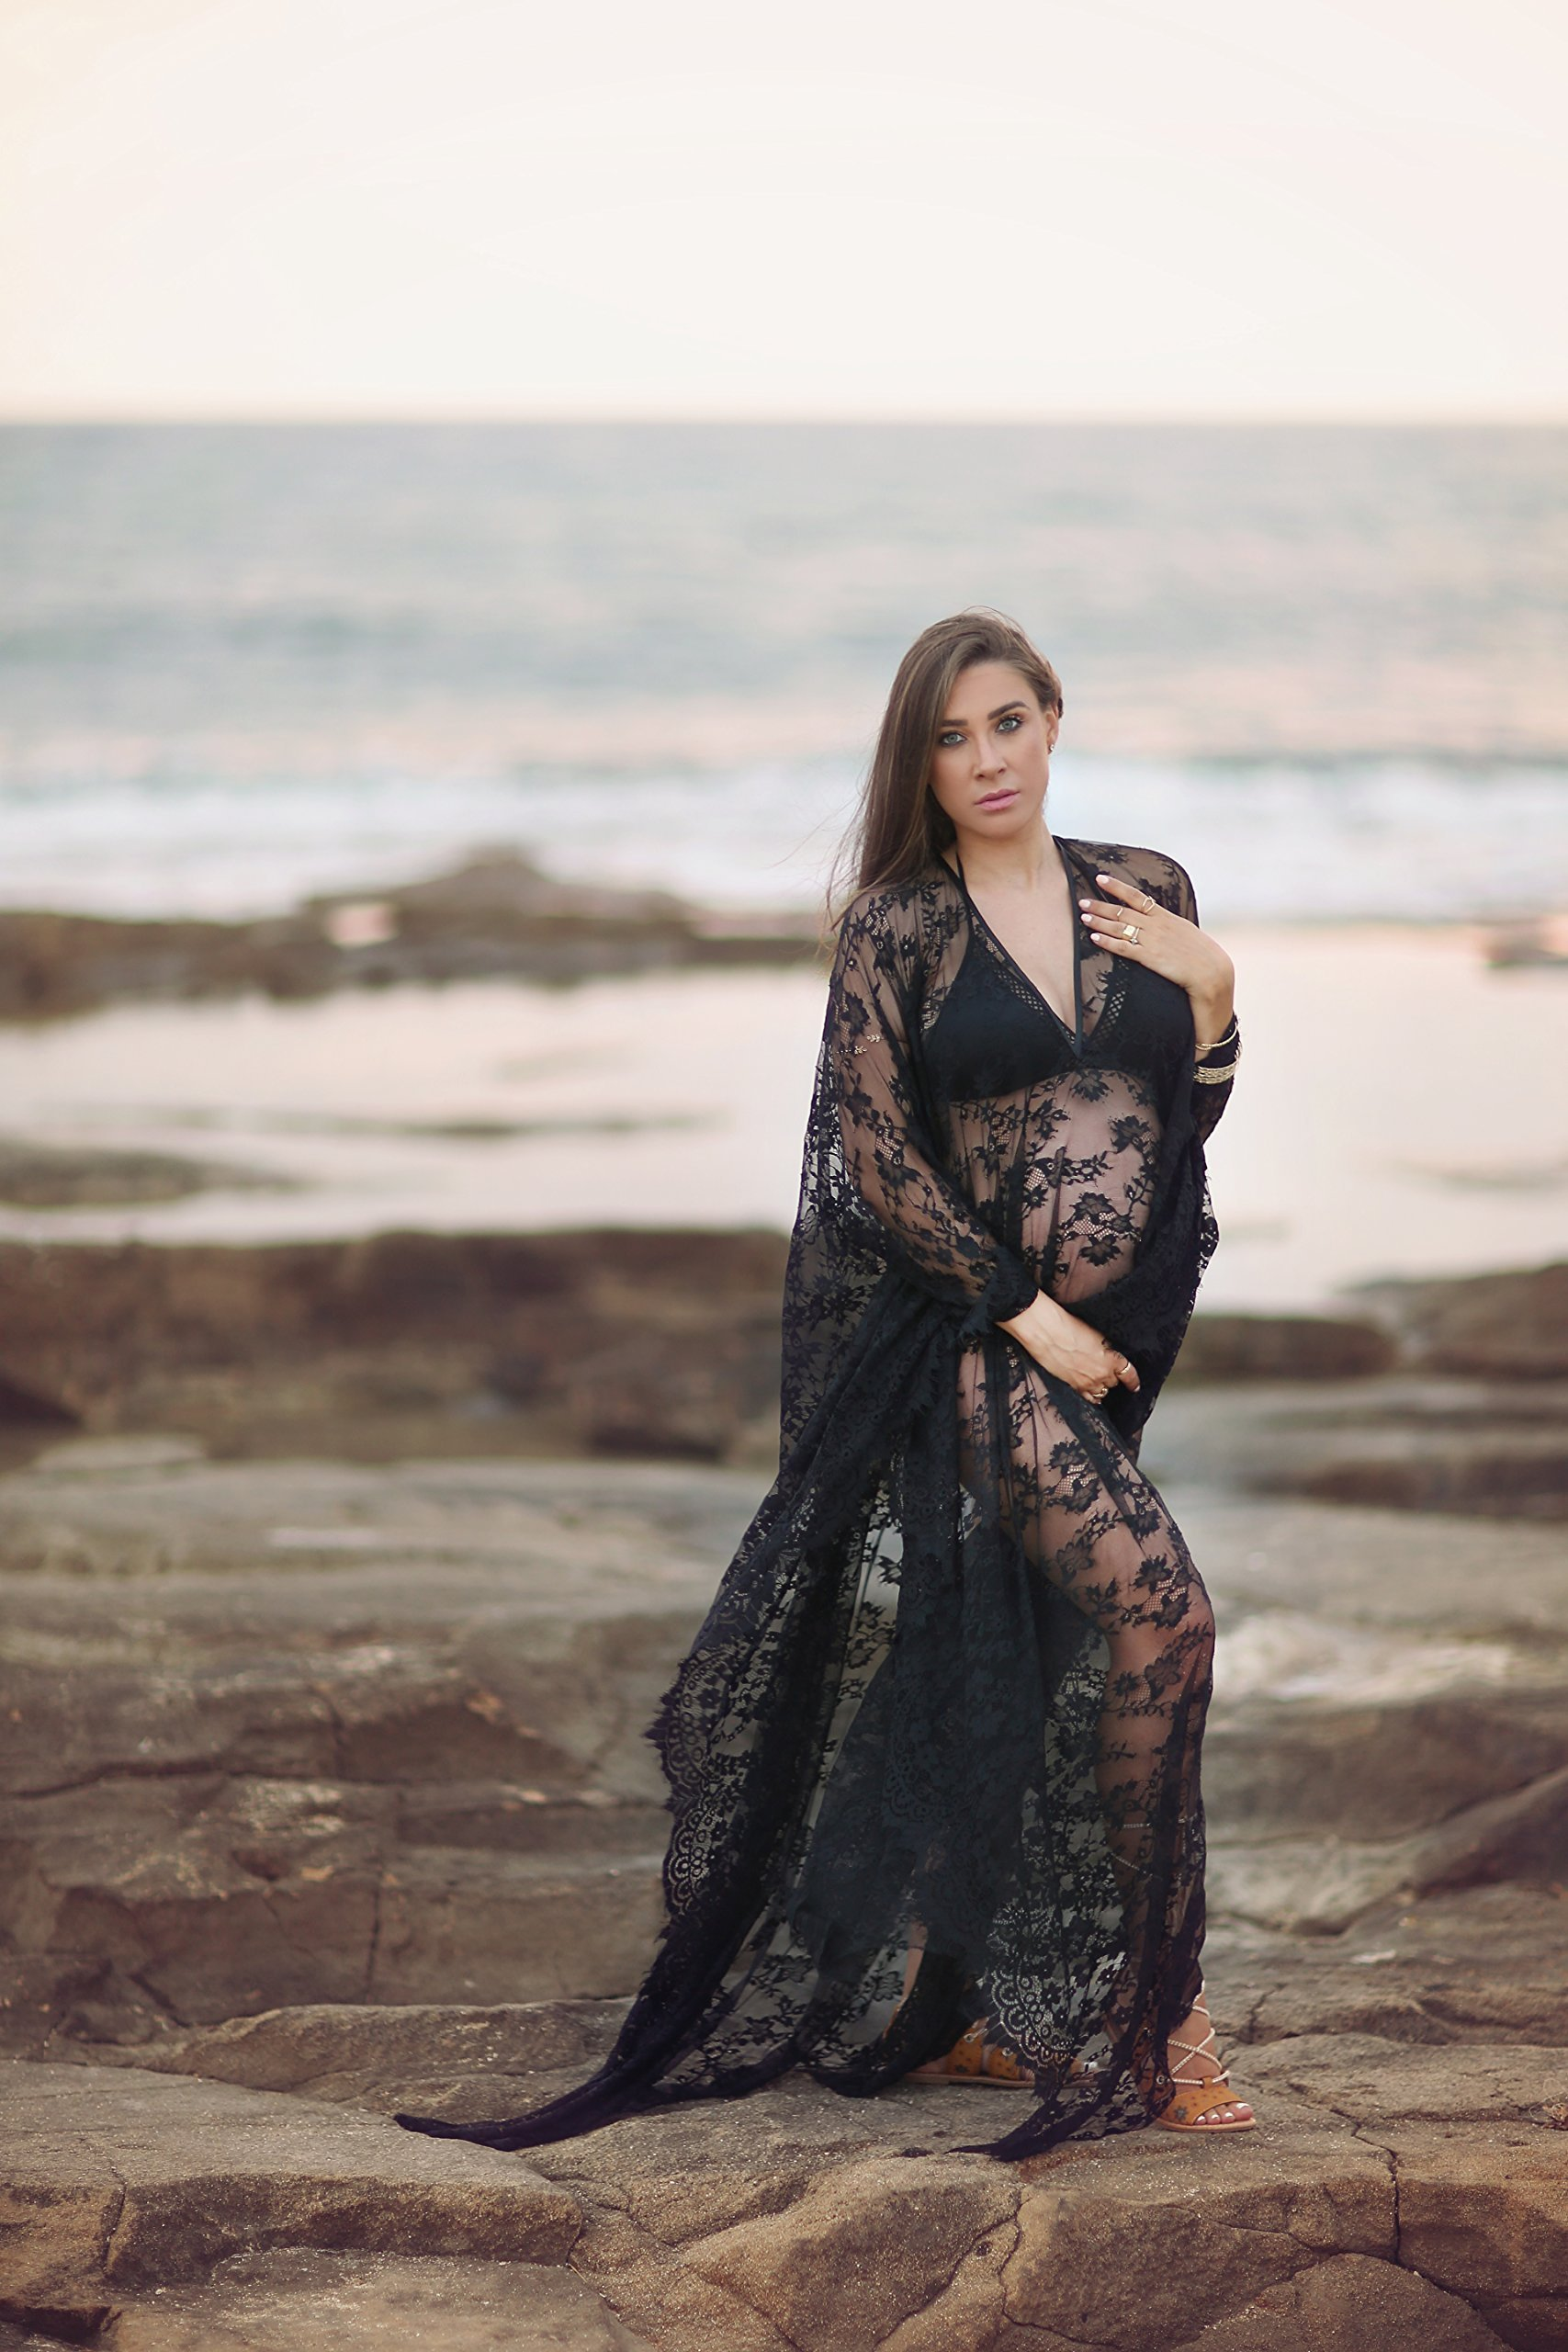 Soft Lace Caftan Dress | Could be used as Beach Dress or Bridal Kaftan Dress